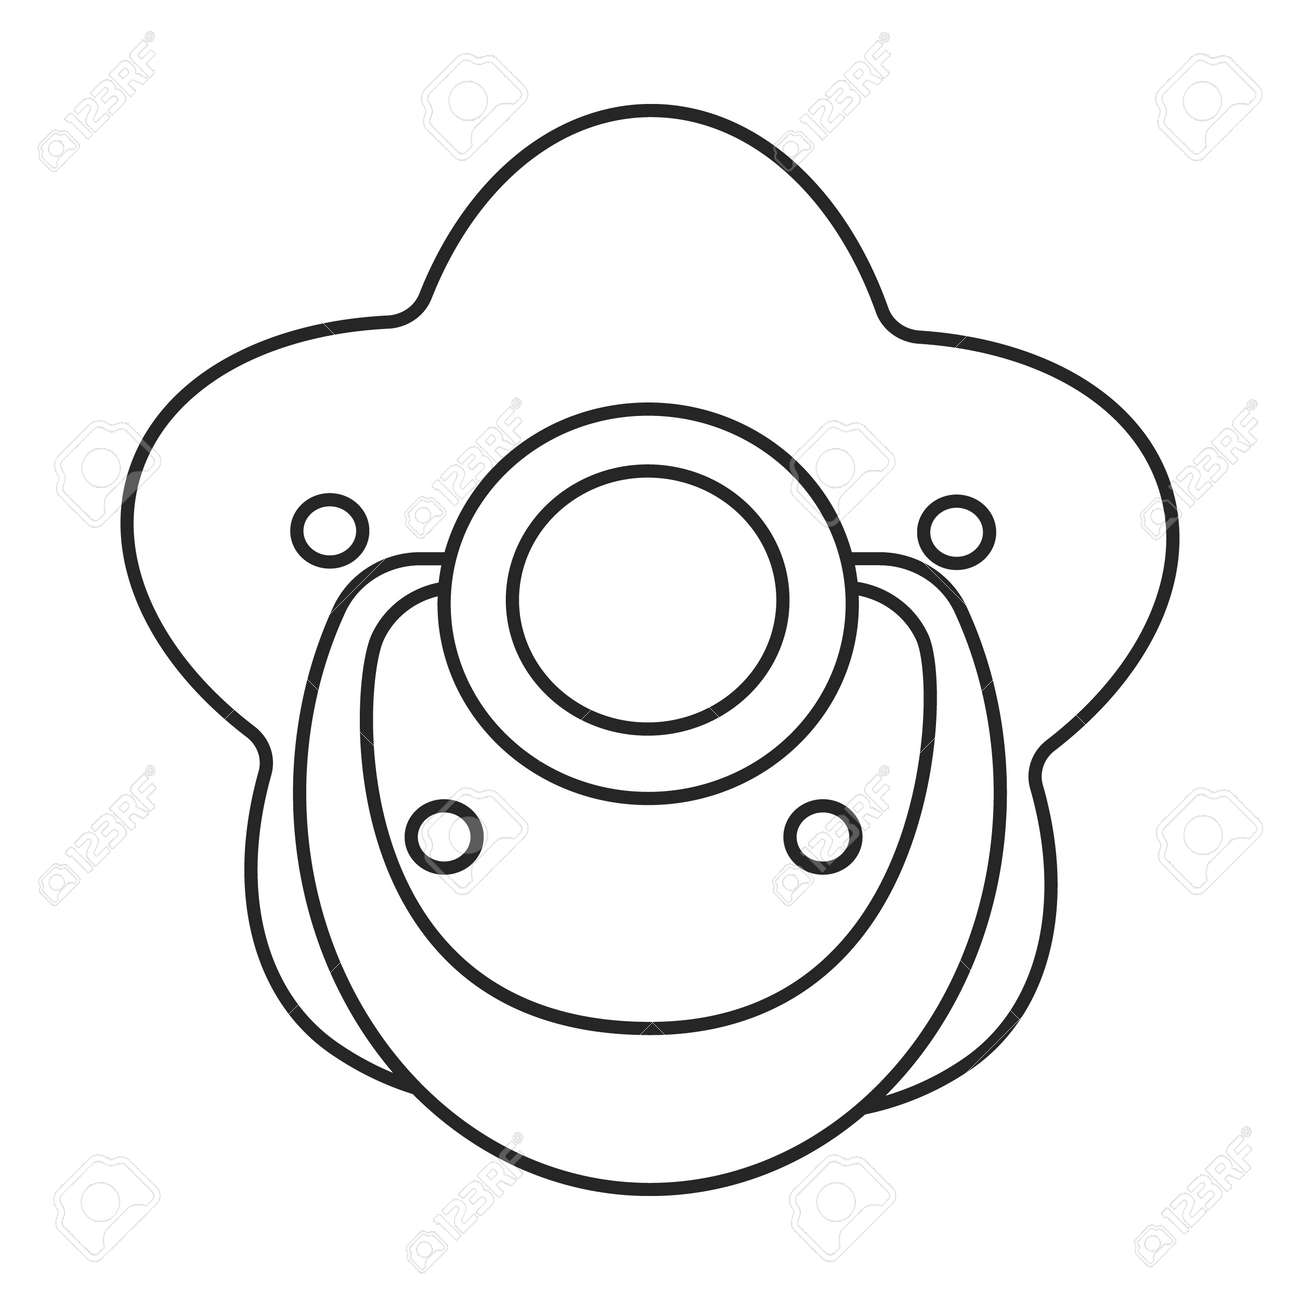 Dummy pacifier vector outline icon. Vector illustration baby on white background. Isolated outline illustration icon of baby dummy pacifier. - 167978034